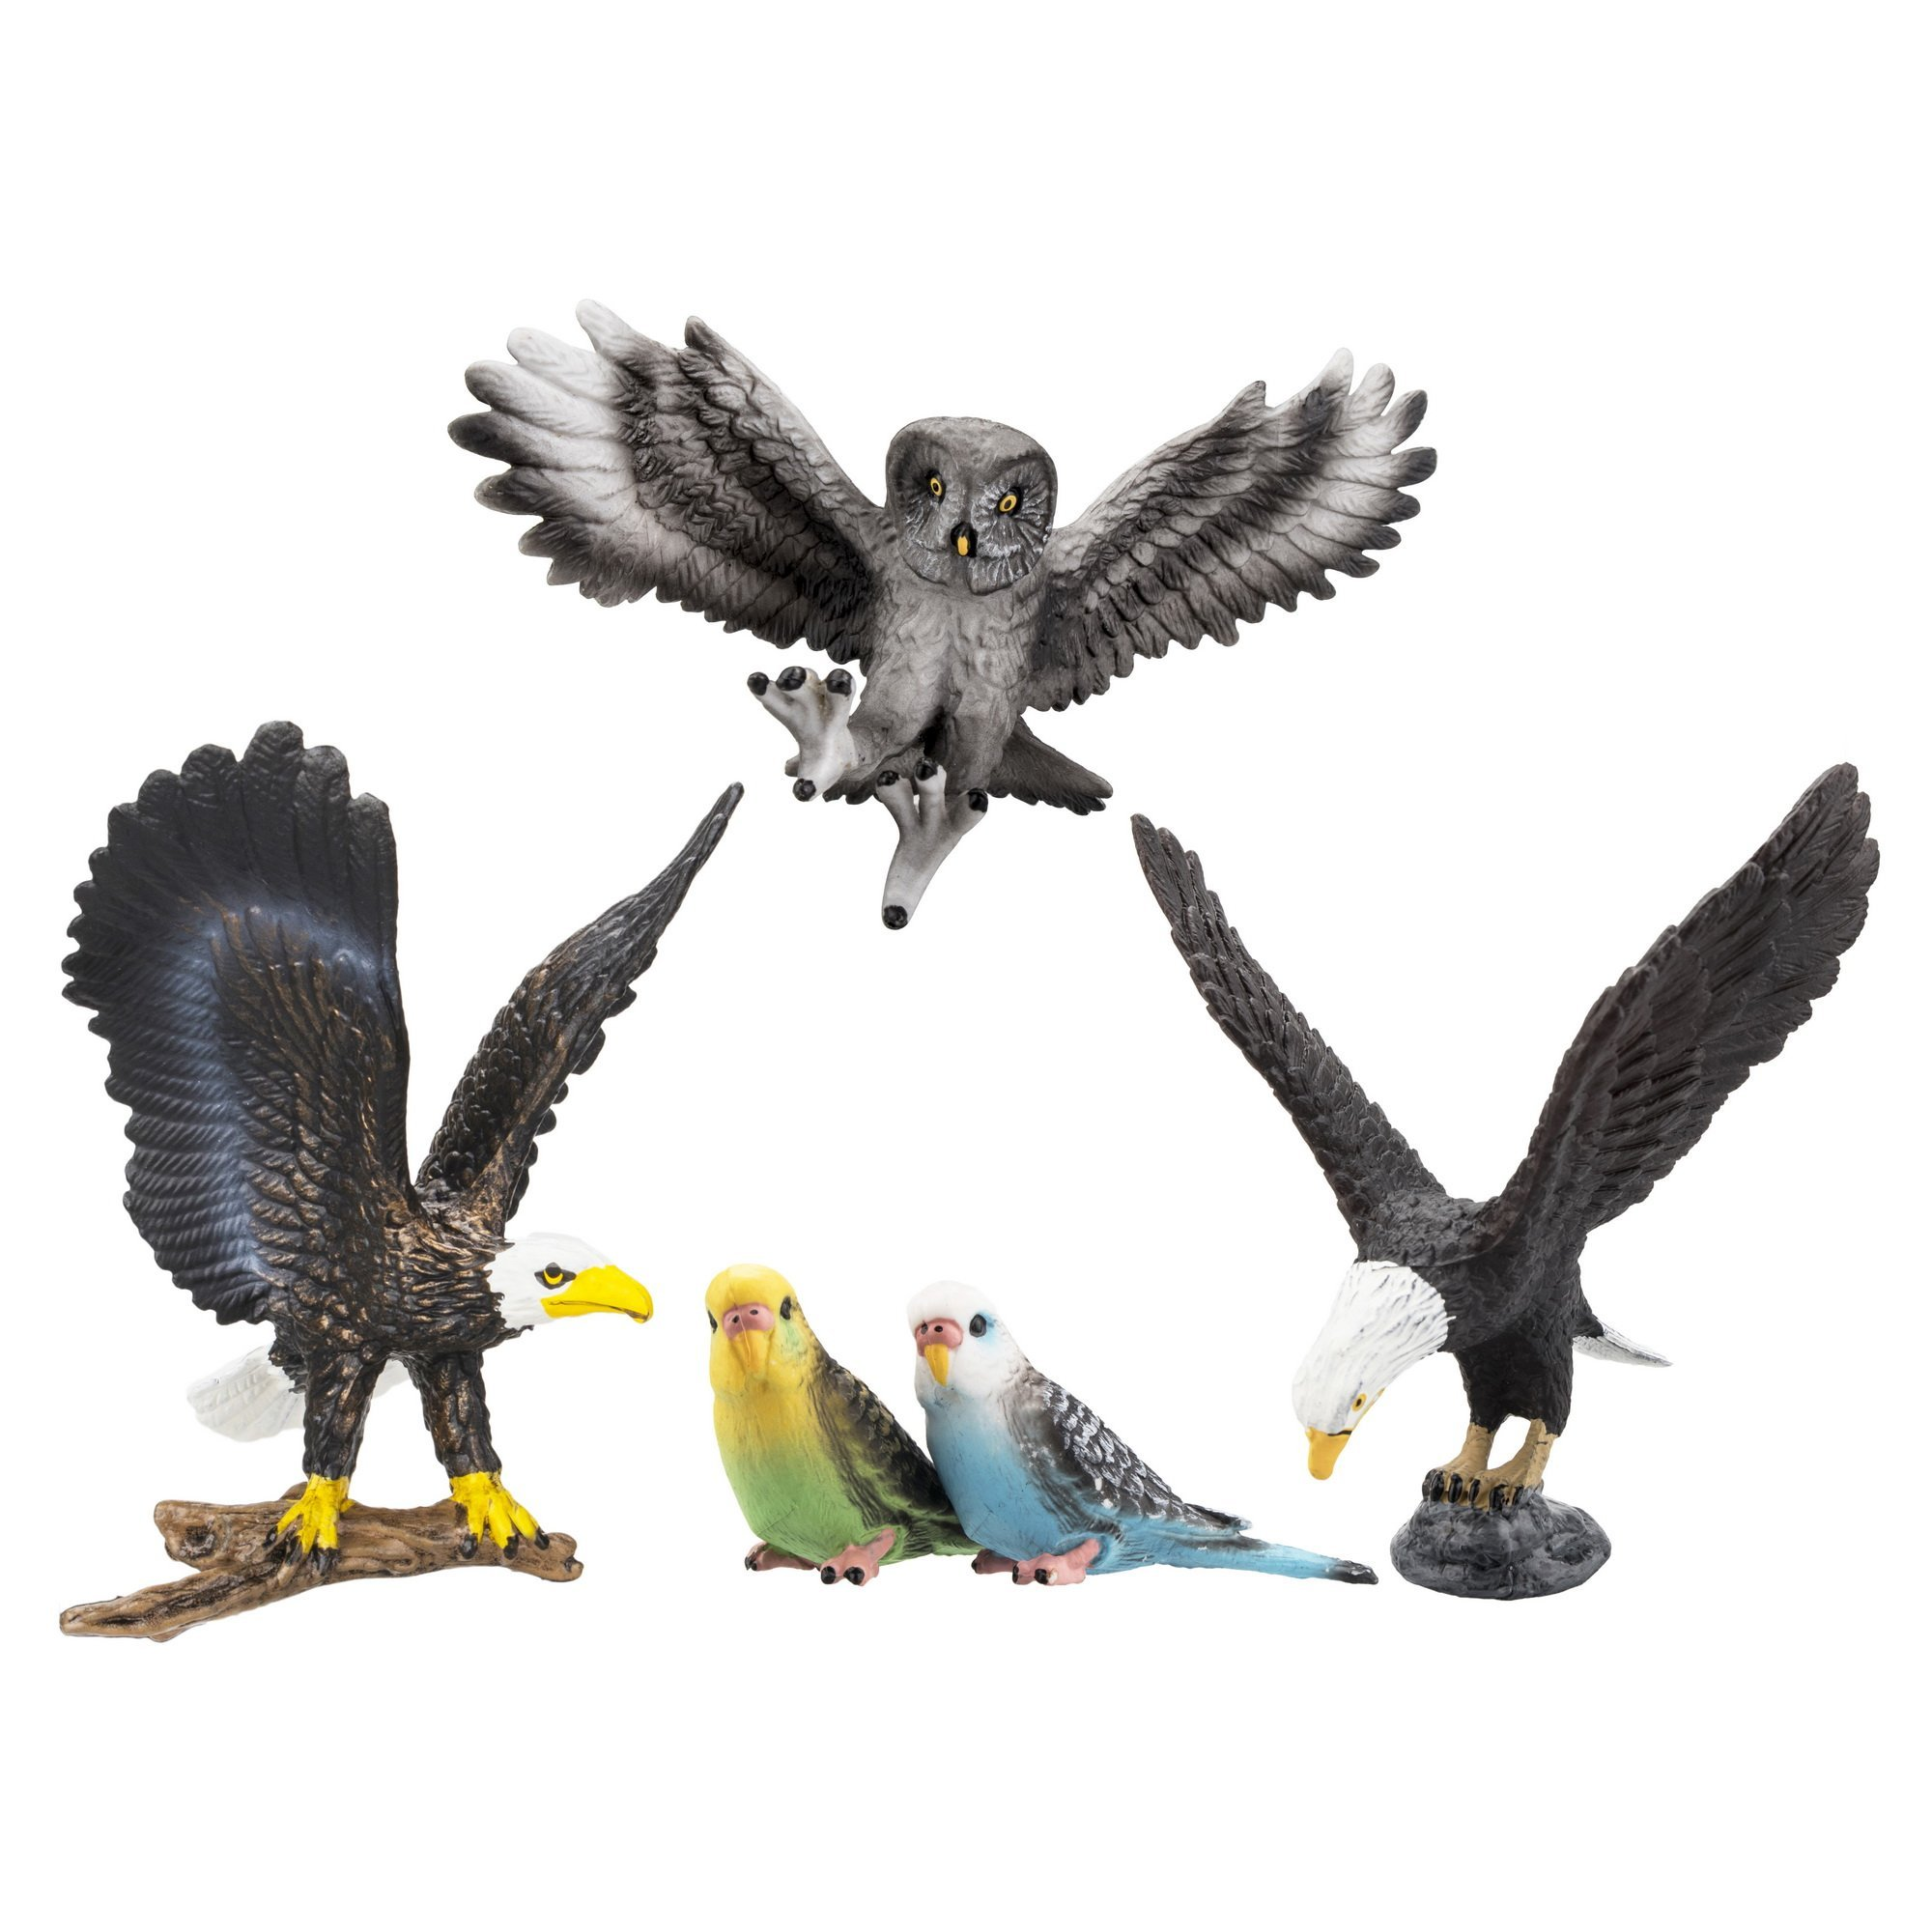 Toymany 5PCS High Realistic Bird Figurines, Birds Animal Figures Toy Set Includes Eagles Owl, Educational Gift Set For Boys Girls Kids Toddlers